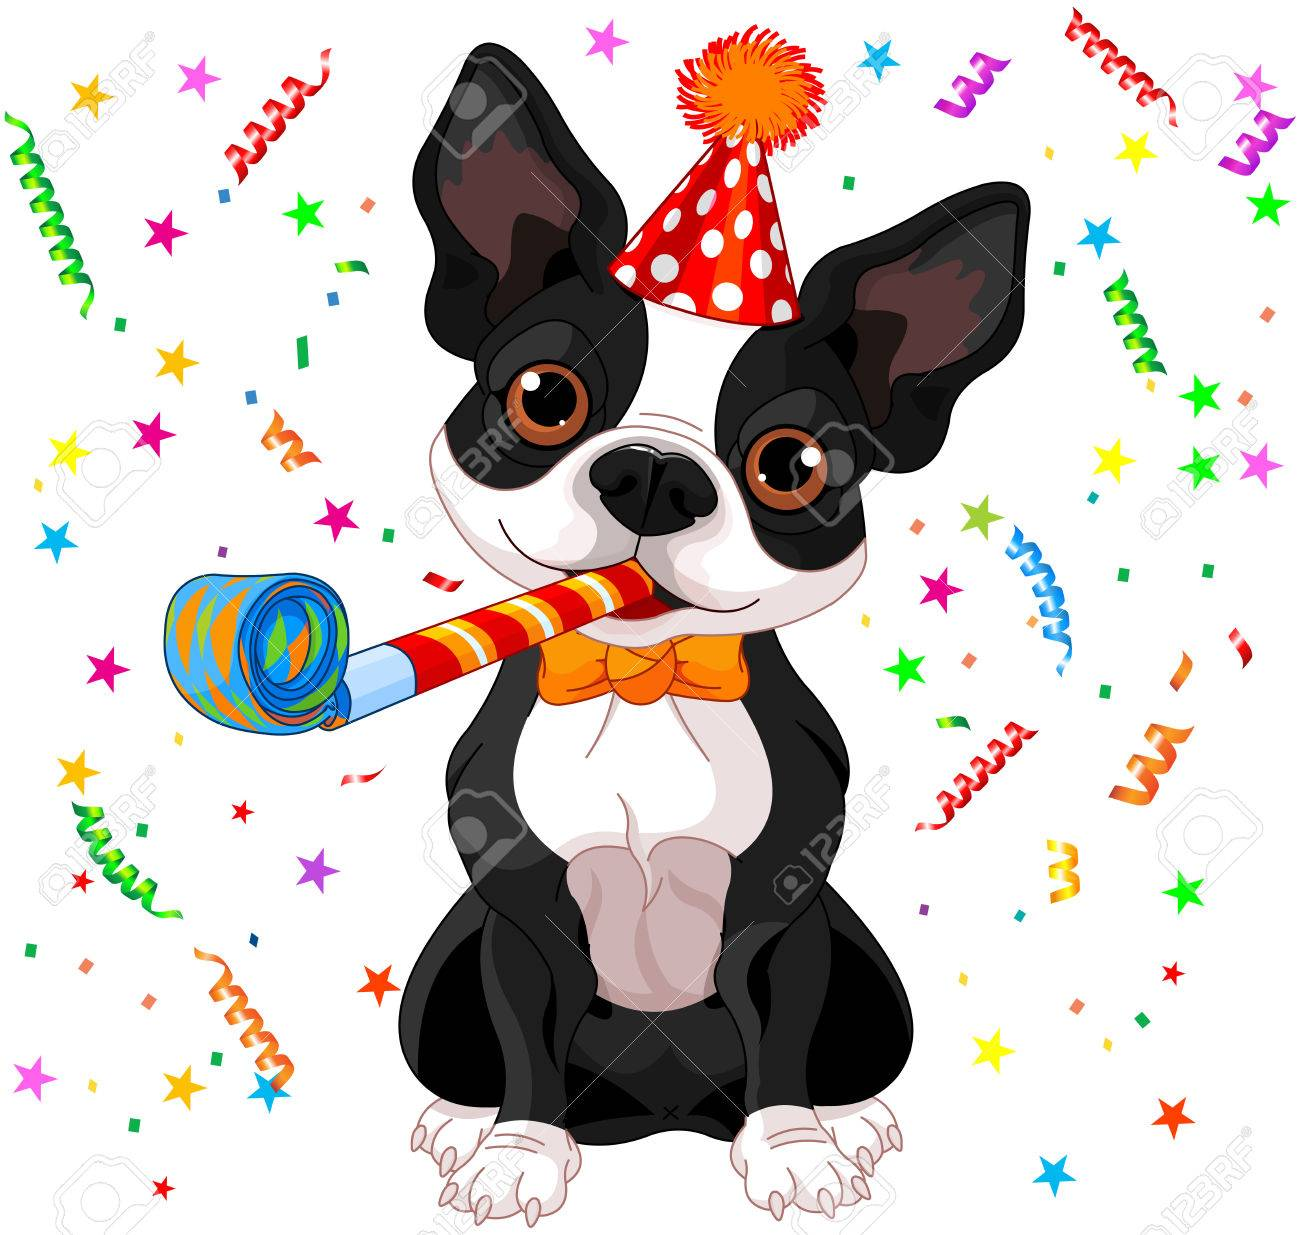 Agressif/réactif avec ses congénères - Page 3 35588778-illustration-of-cute-boston-terrier-celebrating